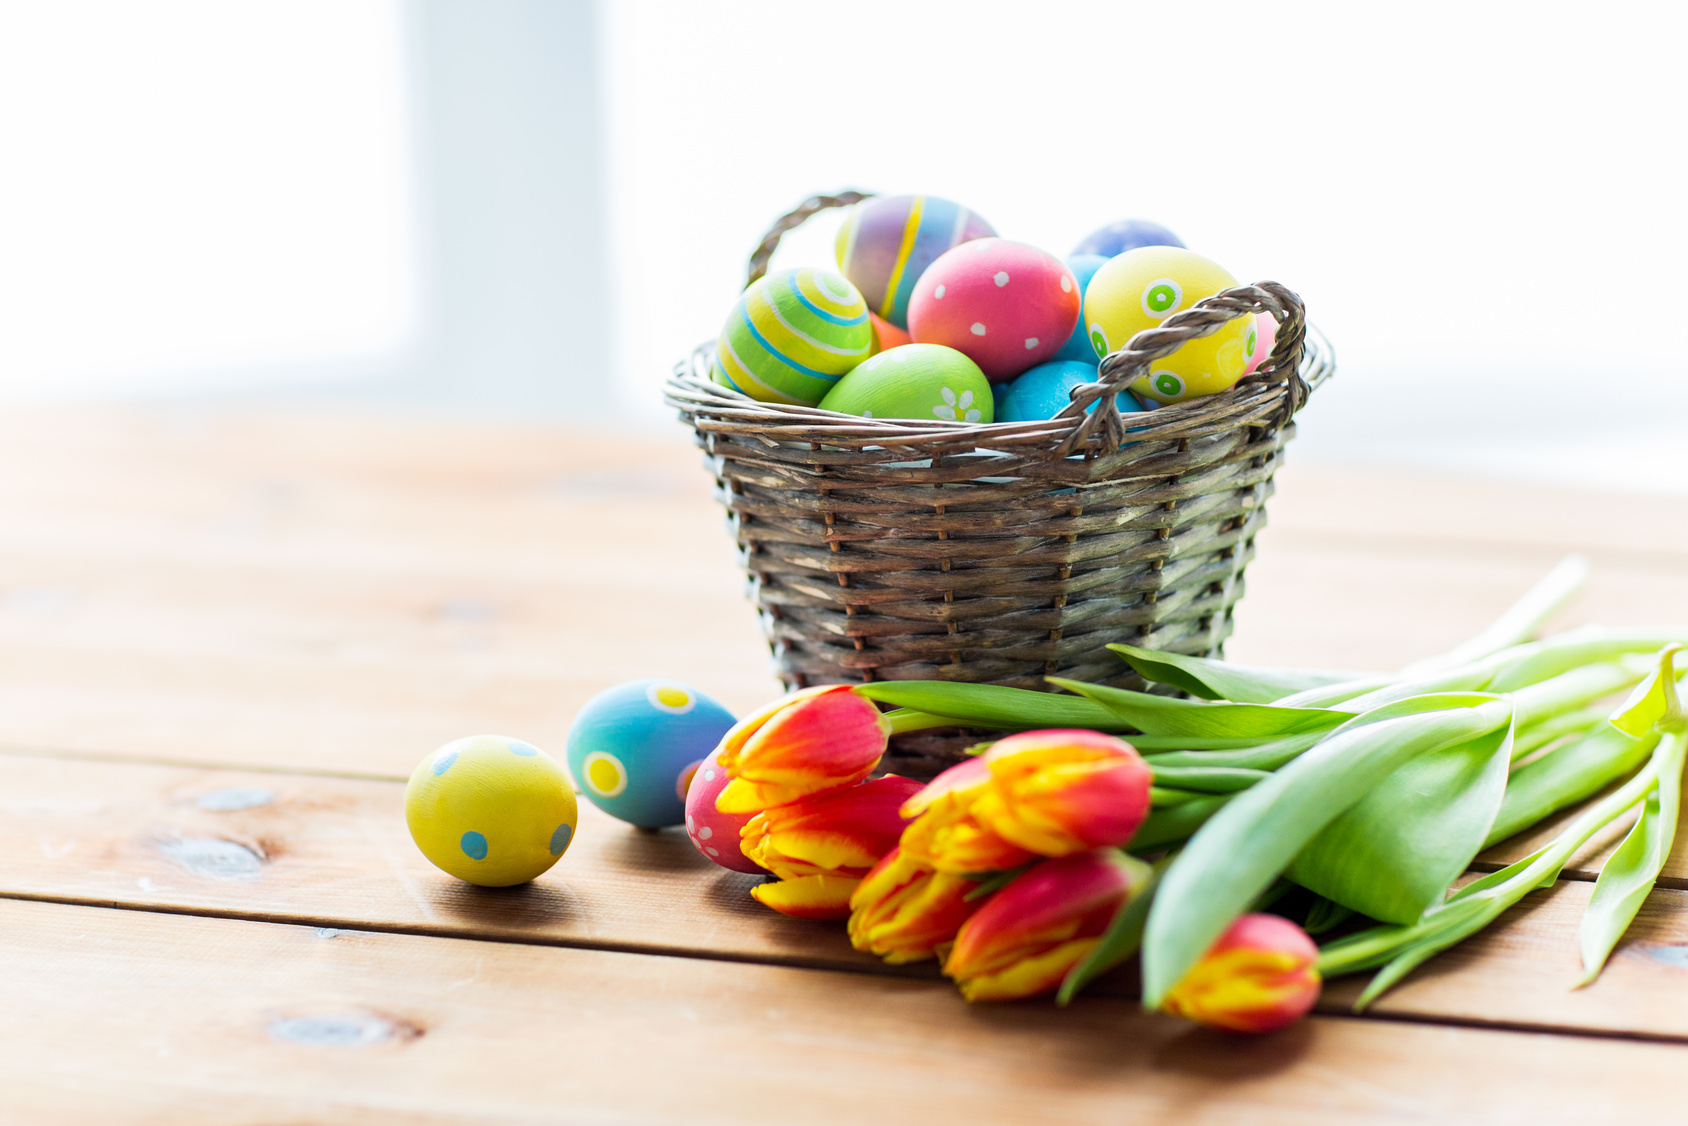 Hop Into The Spirit With These 6 Fun Easter Crafts Ideas